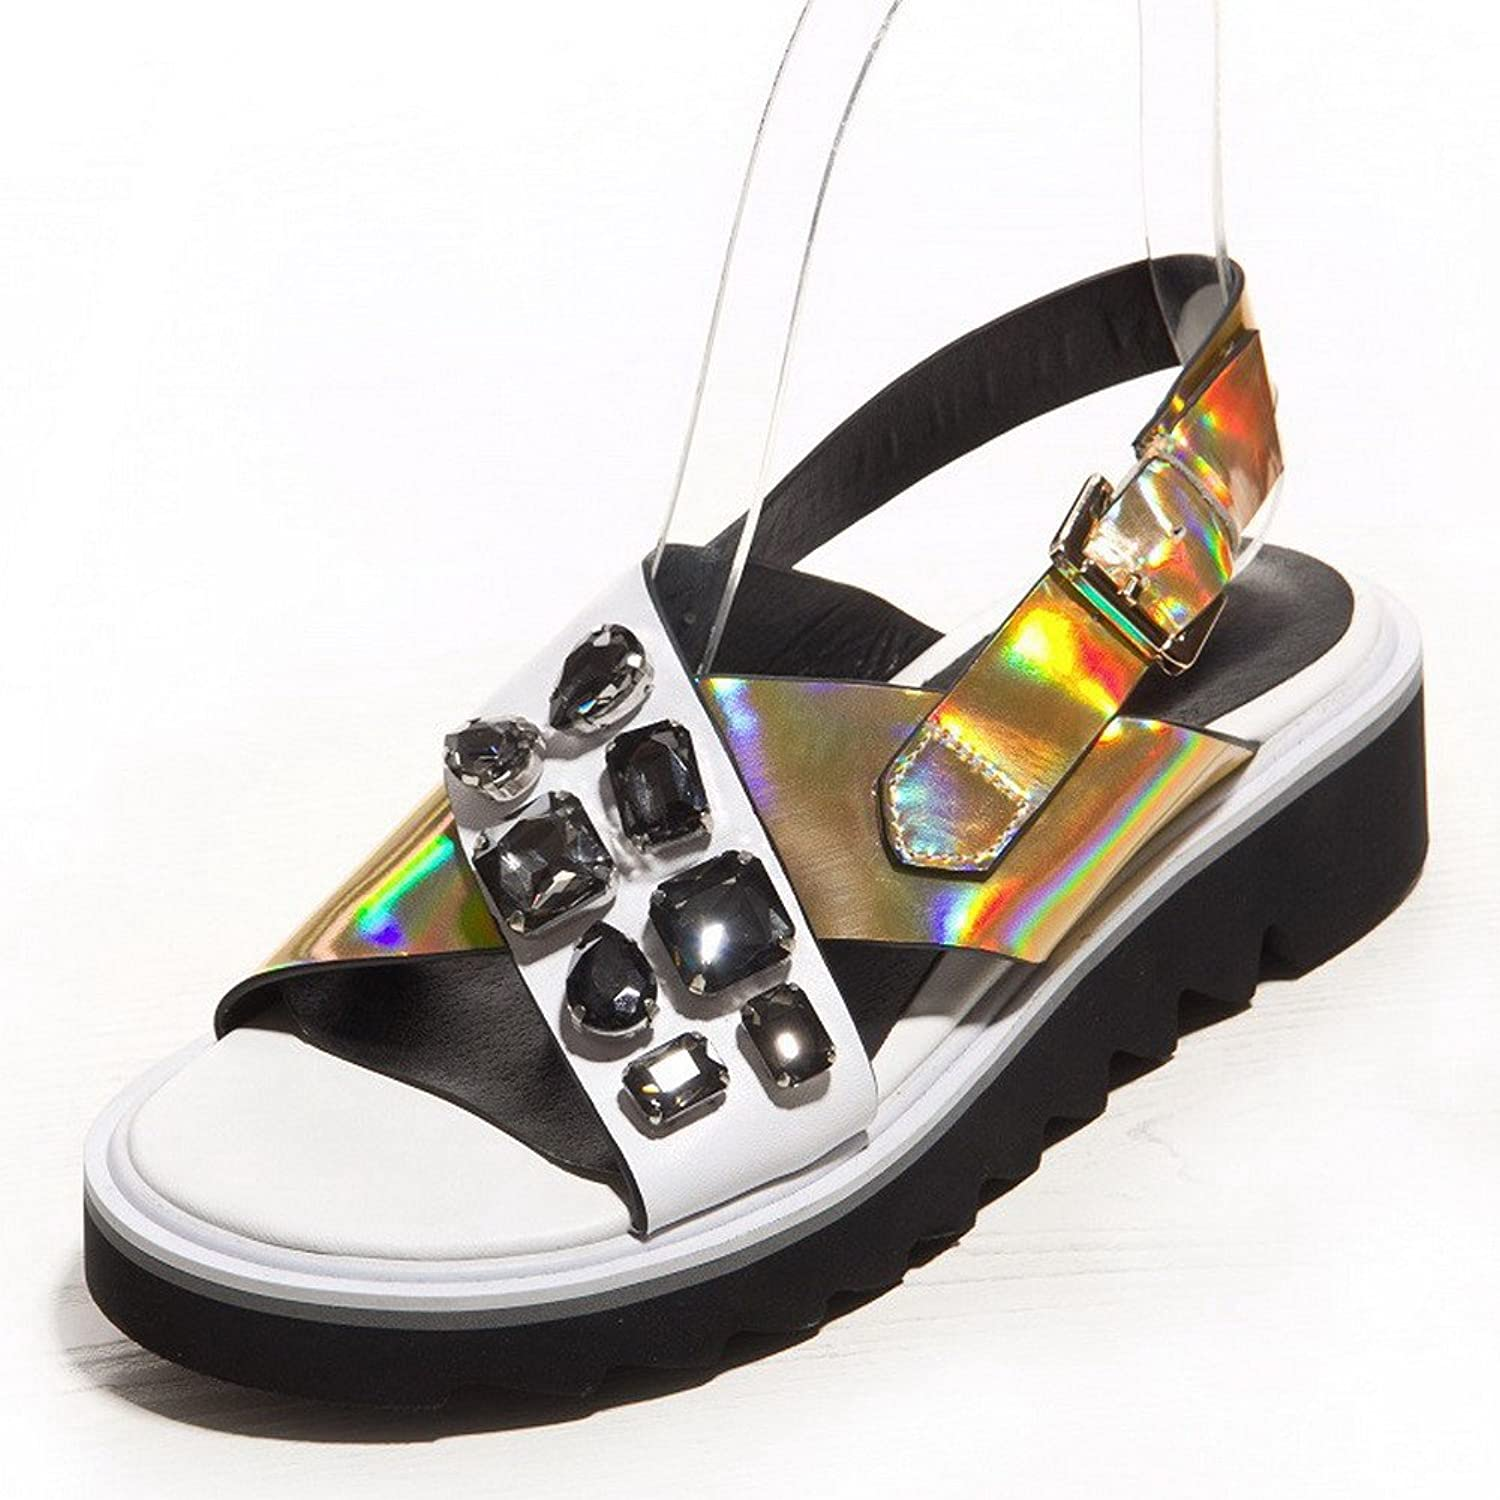 AllhqFashion Women's Round Open Toe Cow Leather Low Heels Assorted color Sandals with Rhinestones